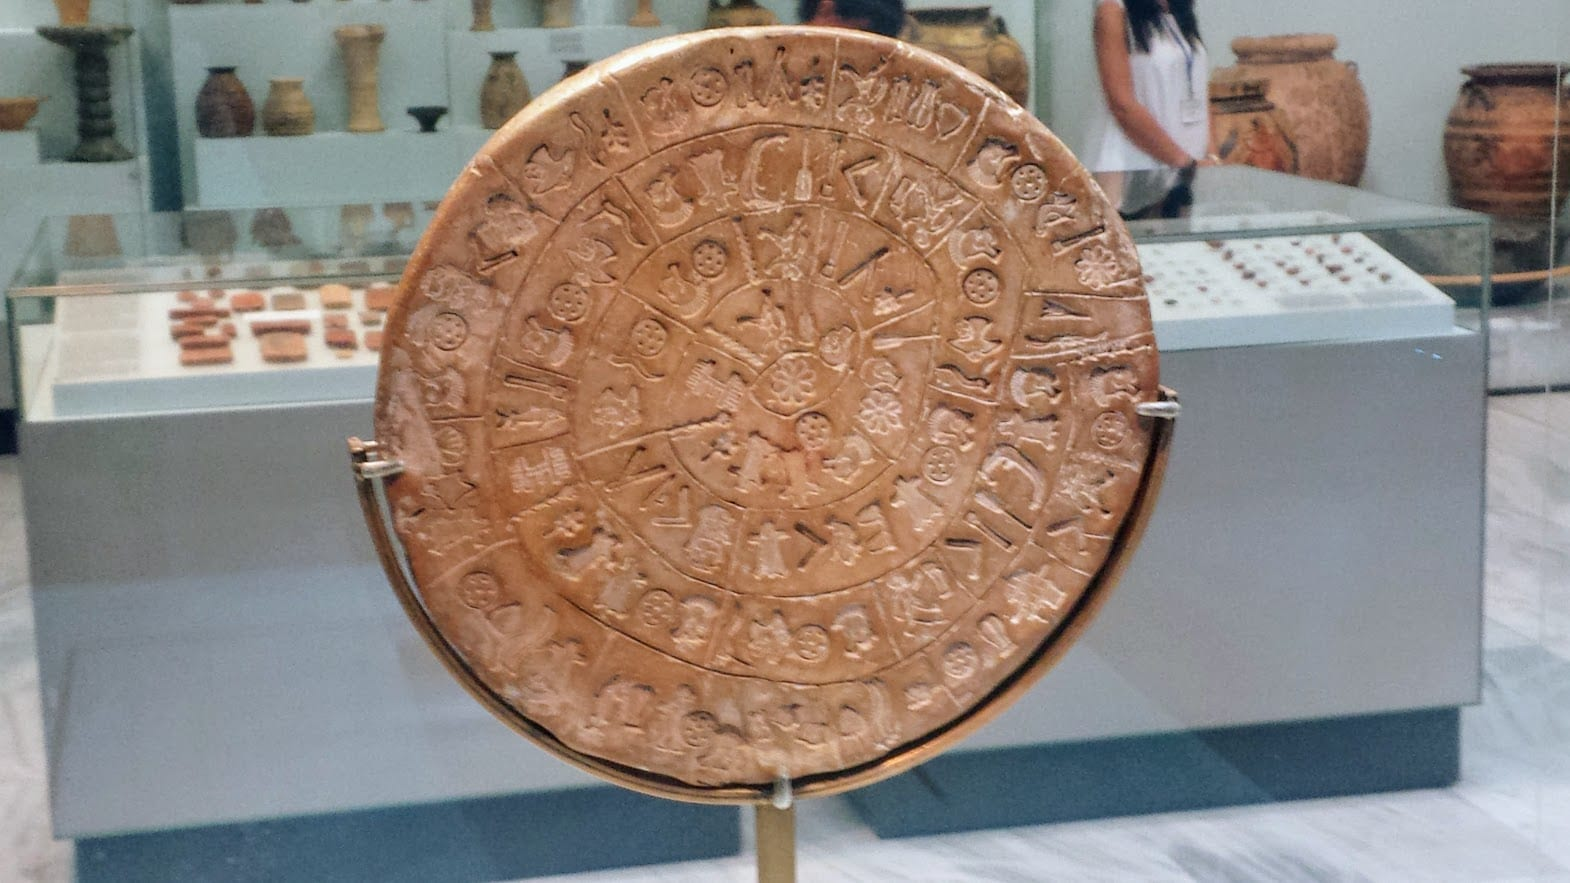 The Phaistos Disc in the Archaeological Museum in Heraklion, Crete.